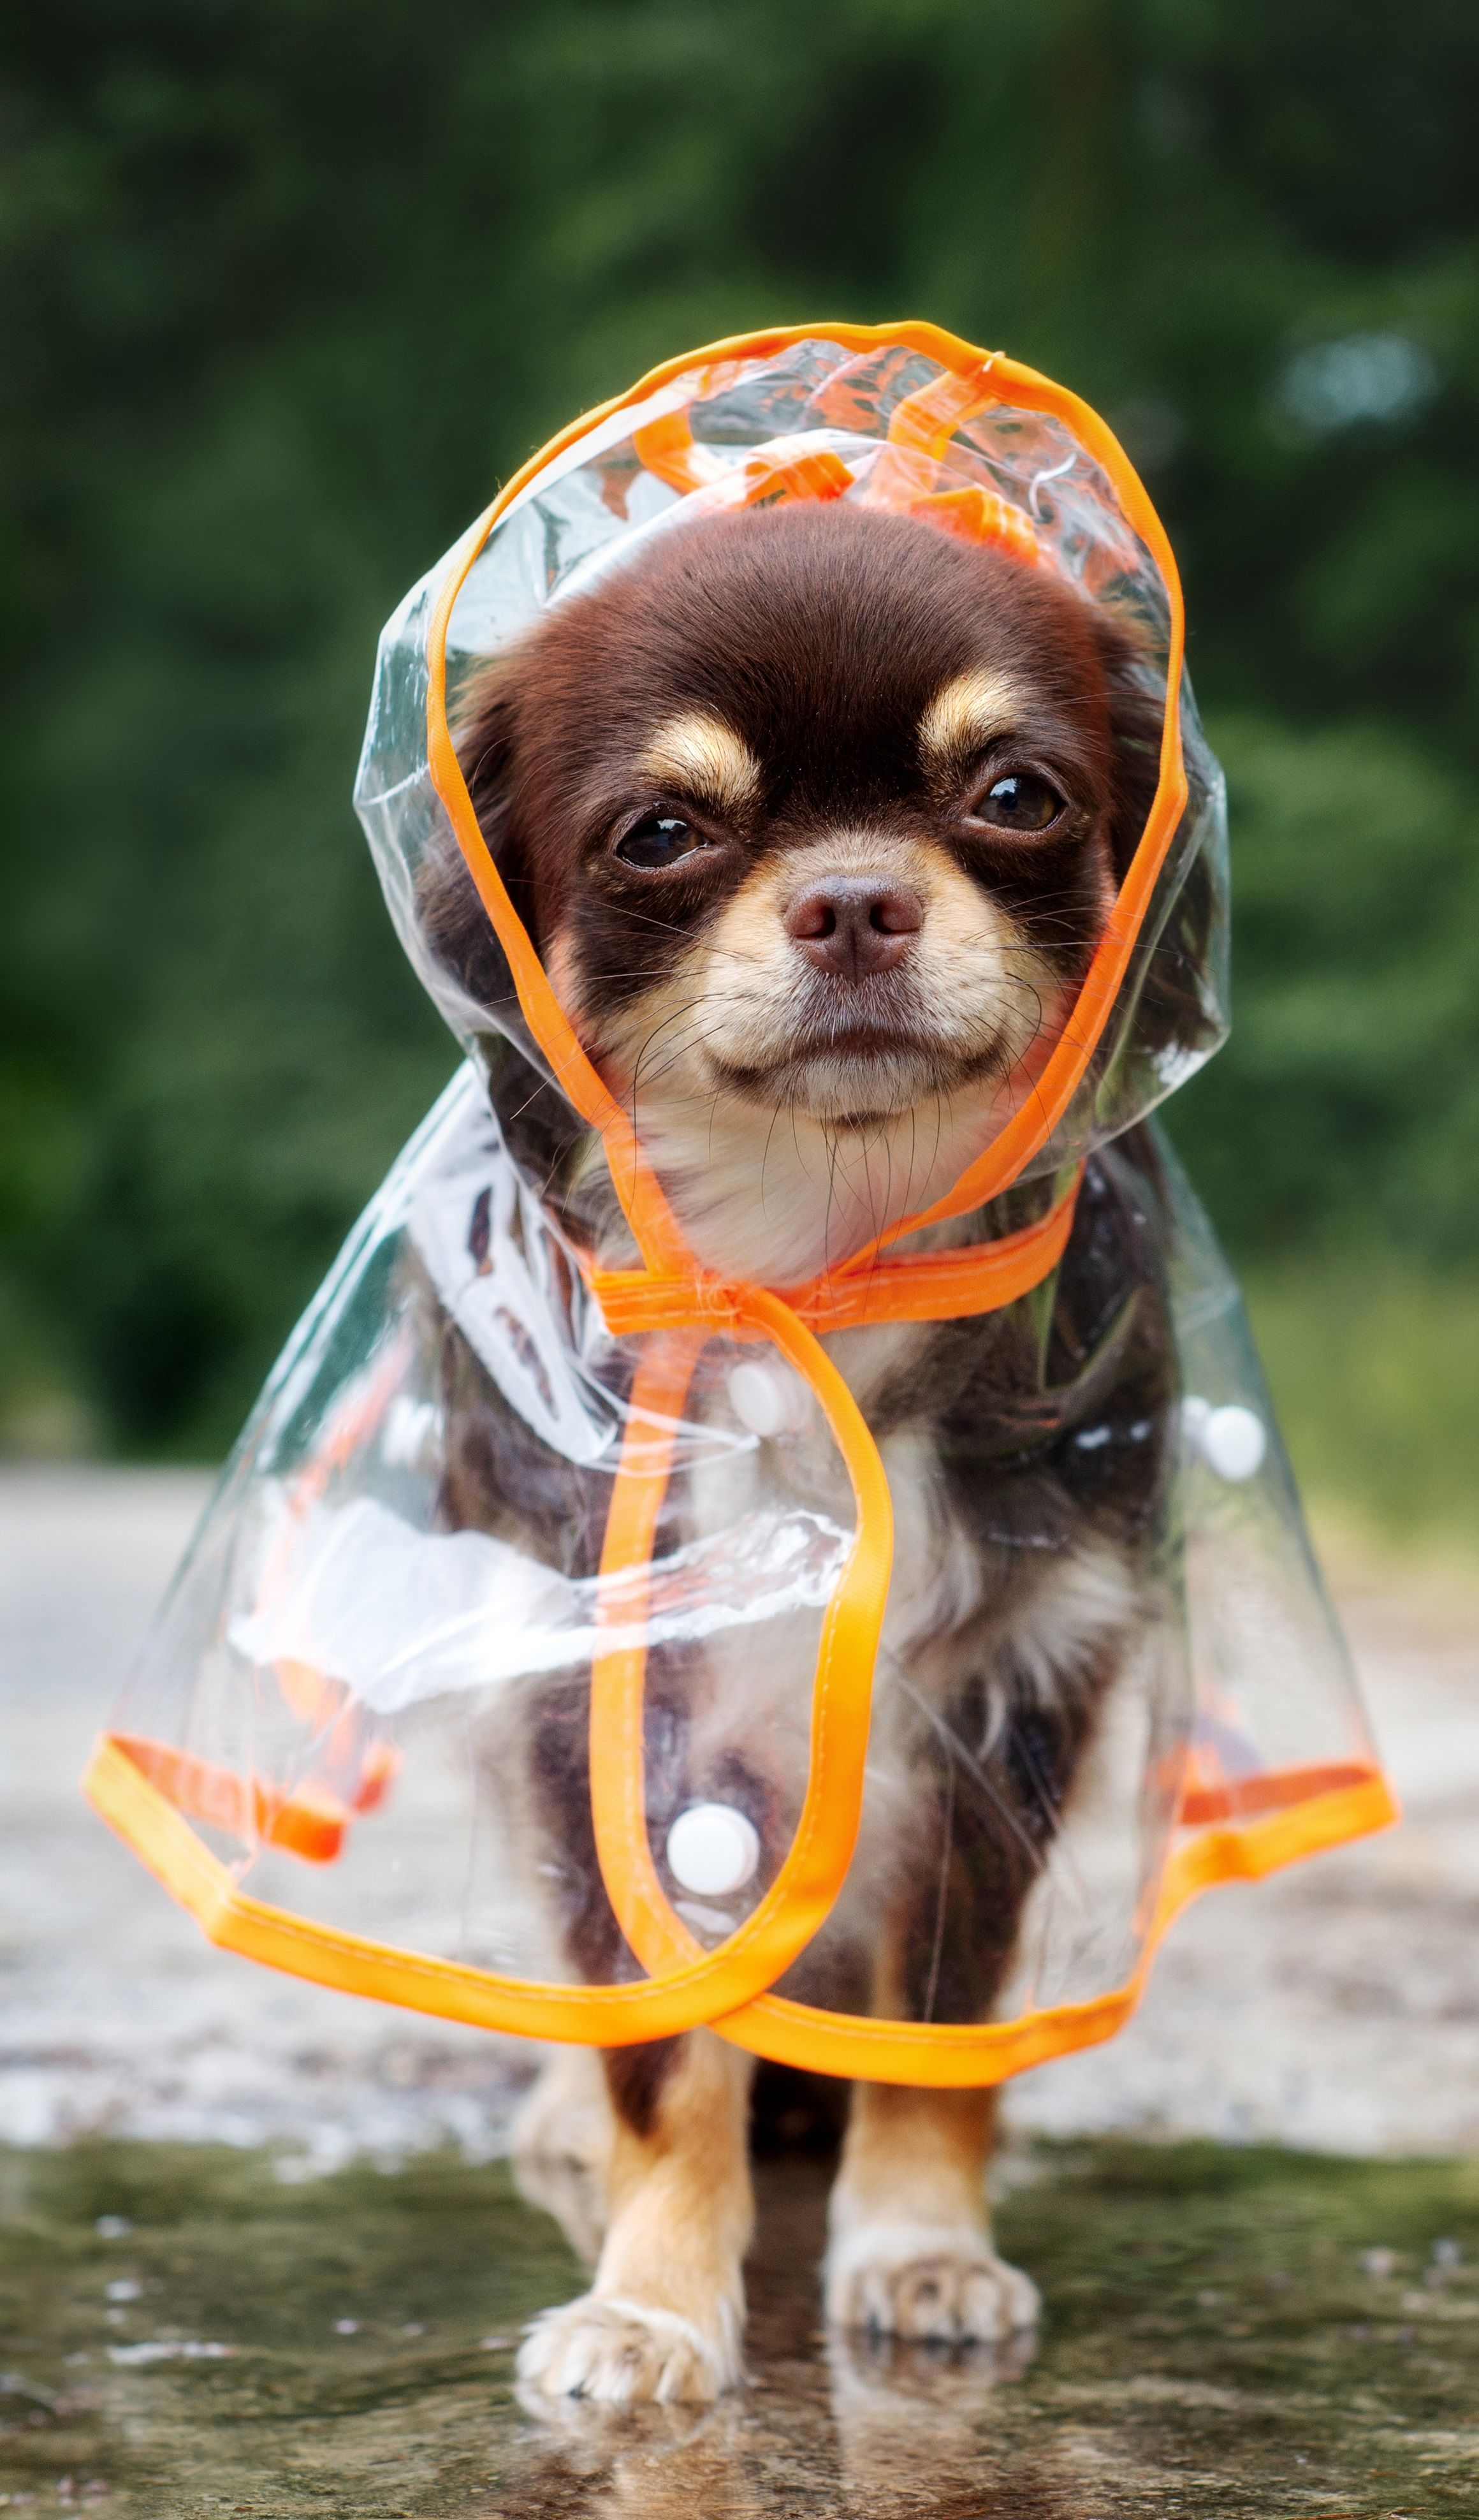 Funny Chihuahua Dog Posing In A Raincoat Outdoors By A Puddle